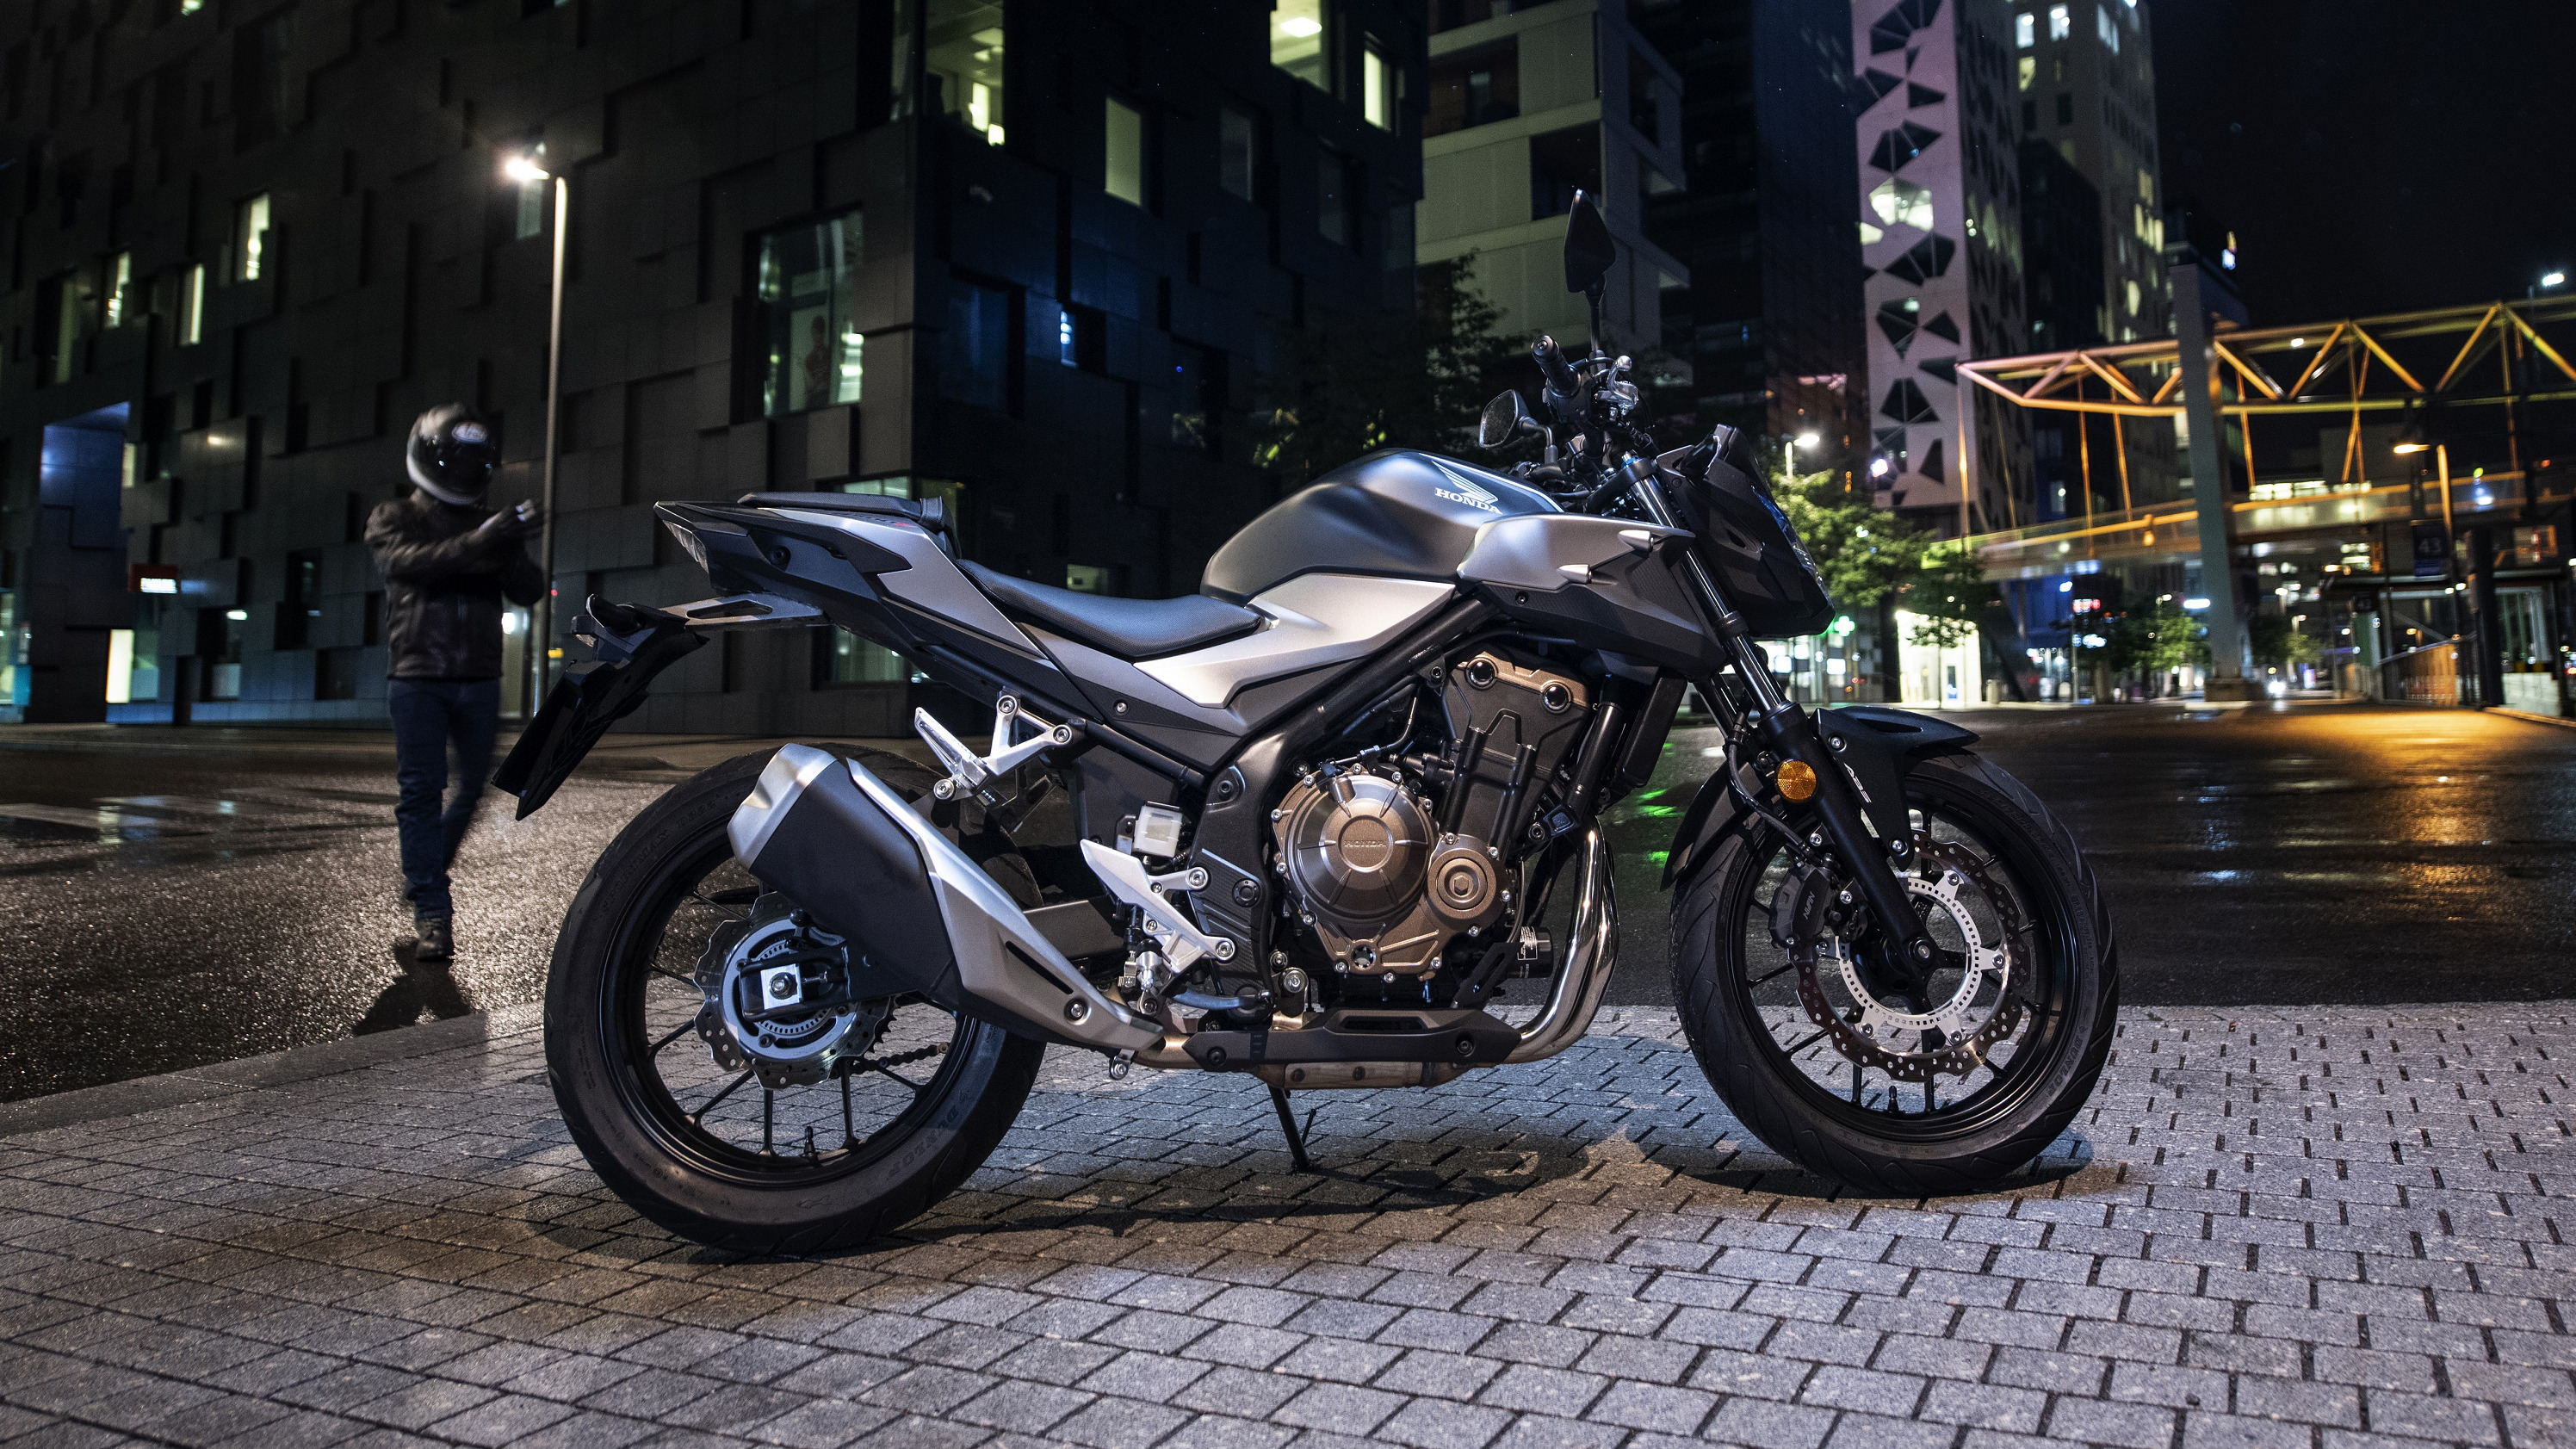 2019 Honda CB500F Pictures, Photos, Wallpapers.